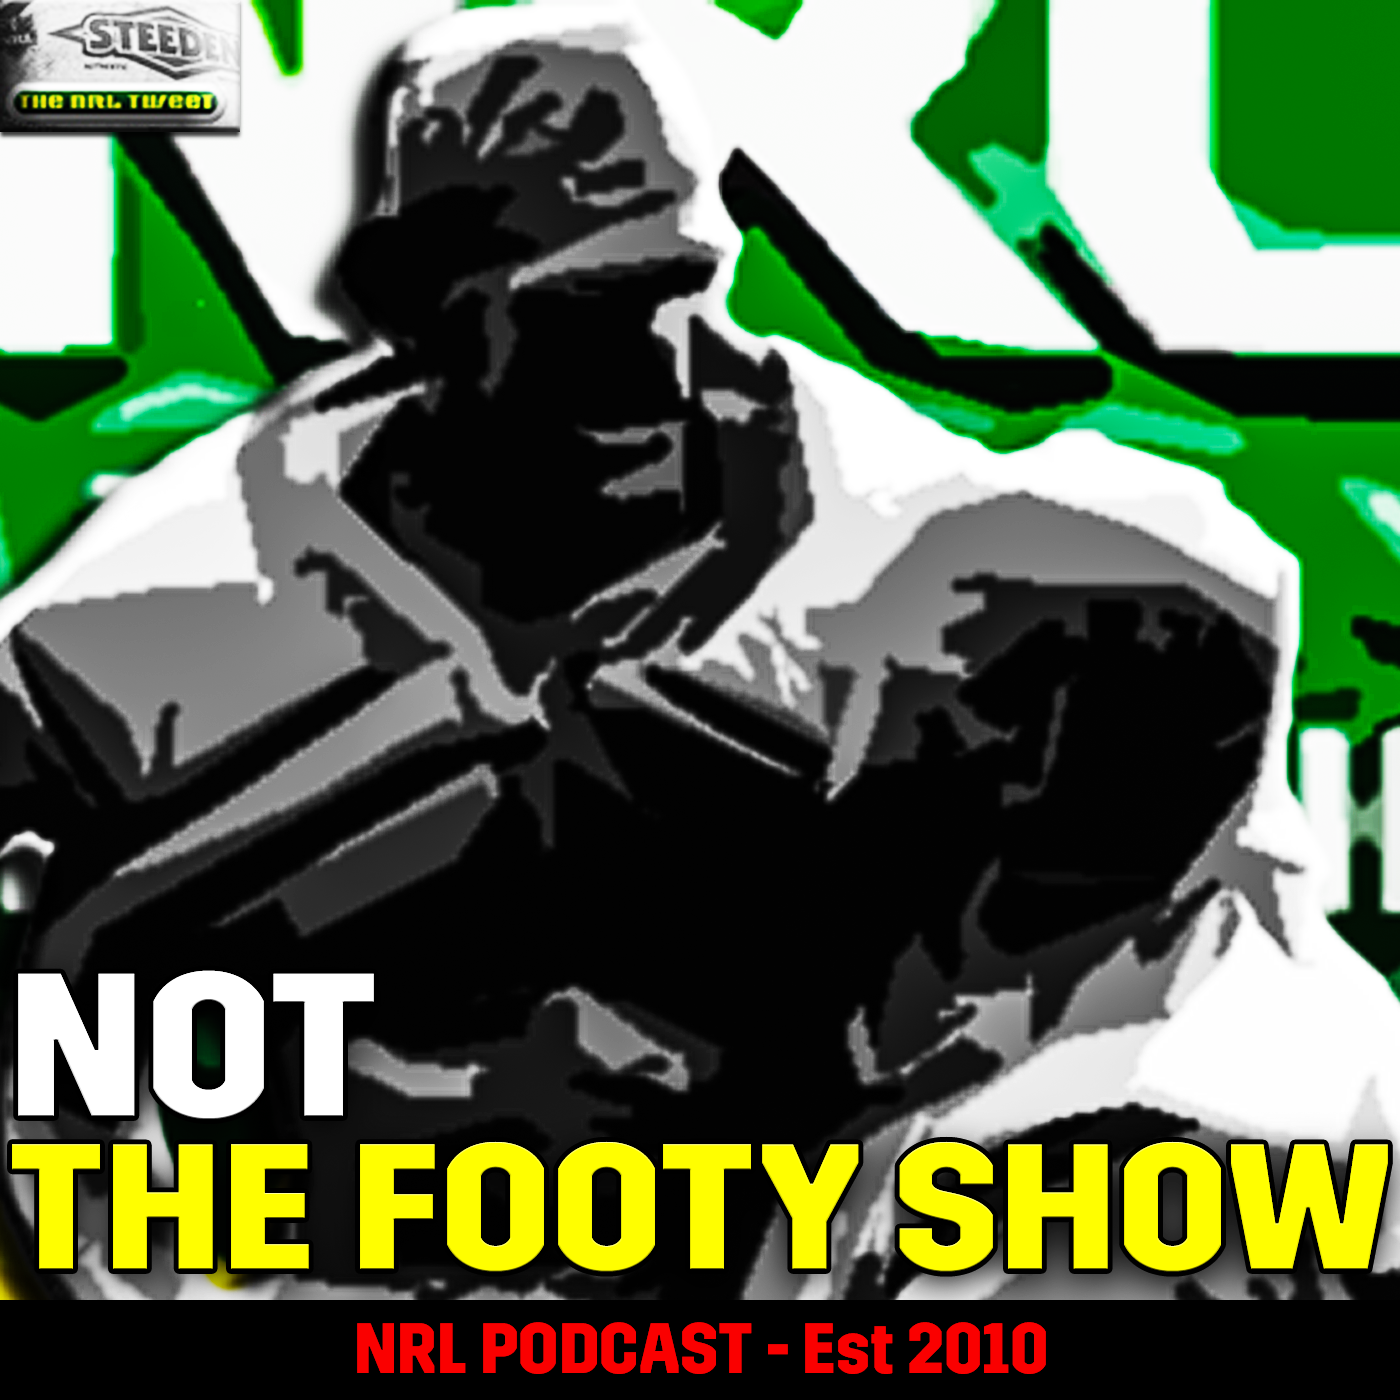 NOT The Footy Show - NRL Podcast